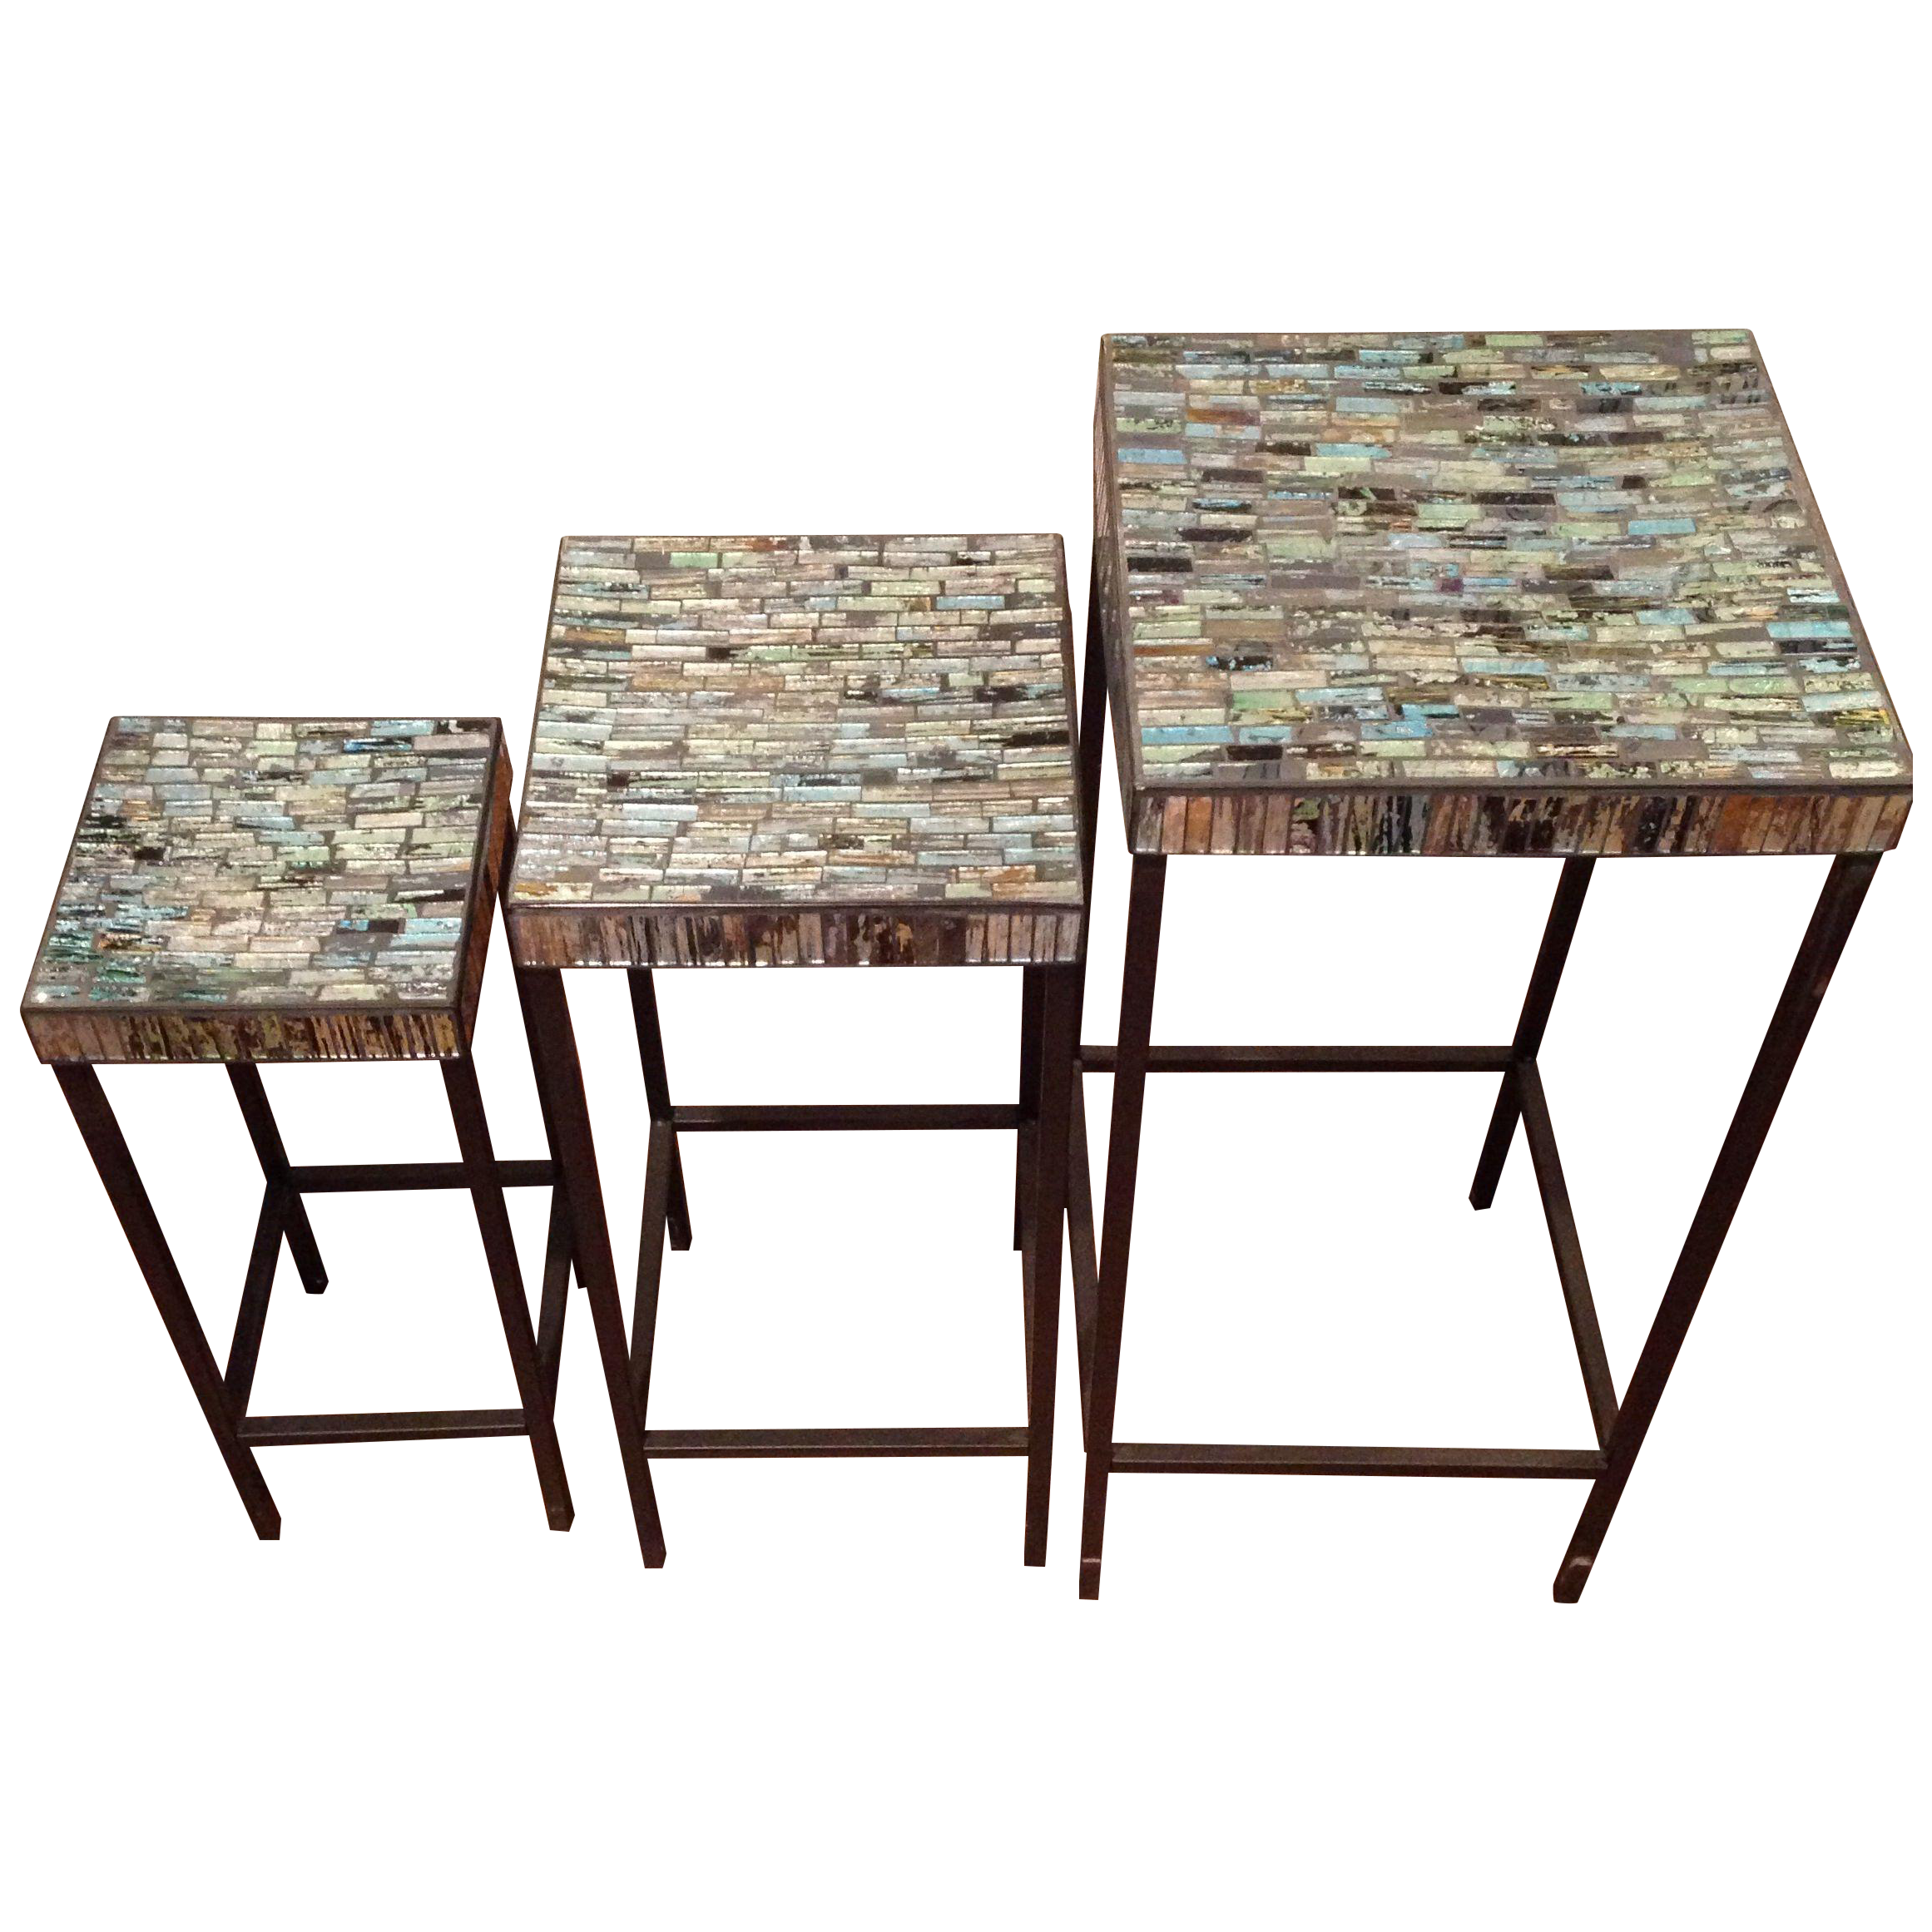 Blue Glass Mosaic Nesting Tables Set Of 3 Chairish. Full resolution‎  image, nominally Width 2322 Height 2322 pixels, image with #2E1A16.